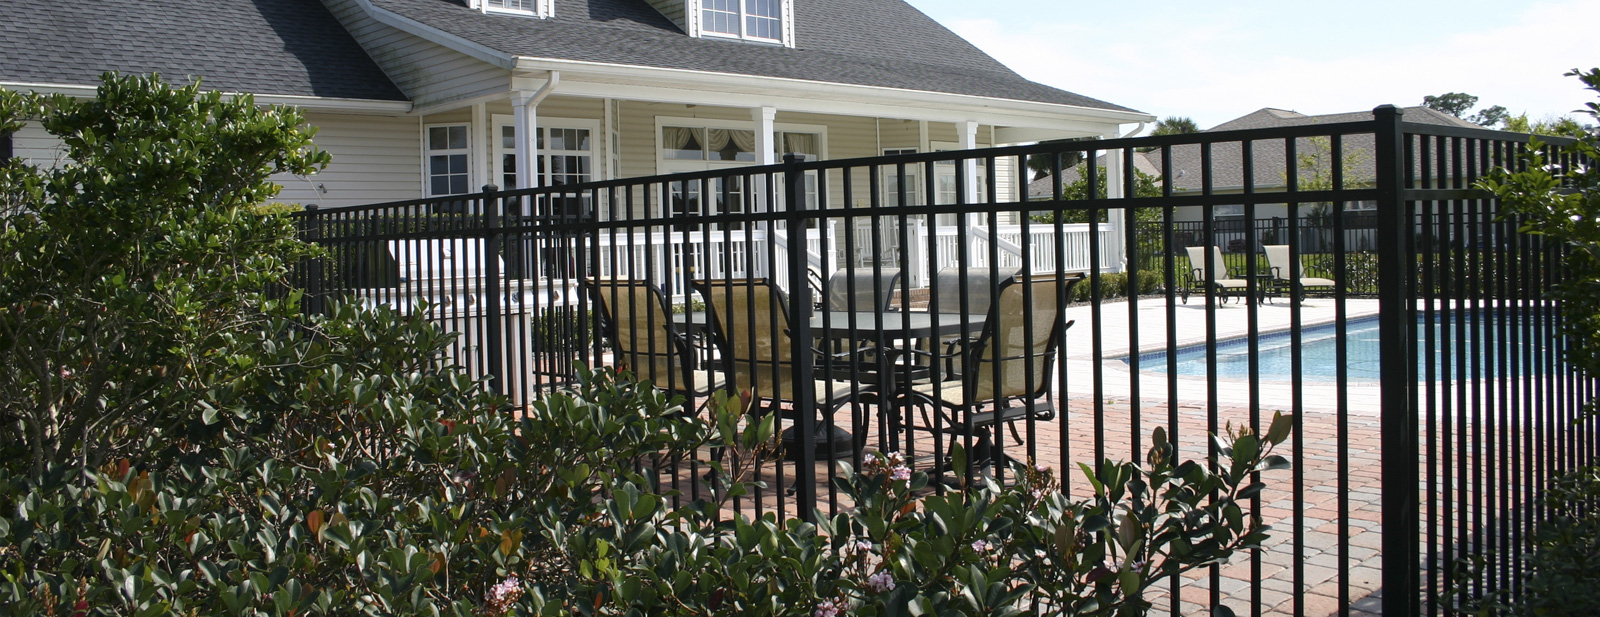 Globe Fence Amp Railings Inc The Leading Residential